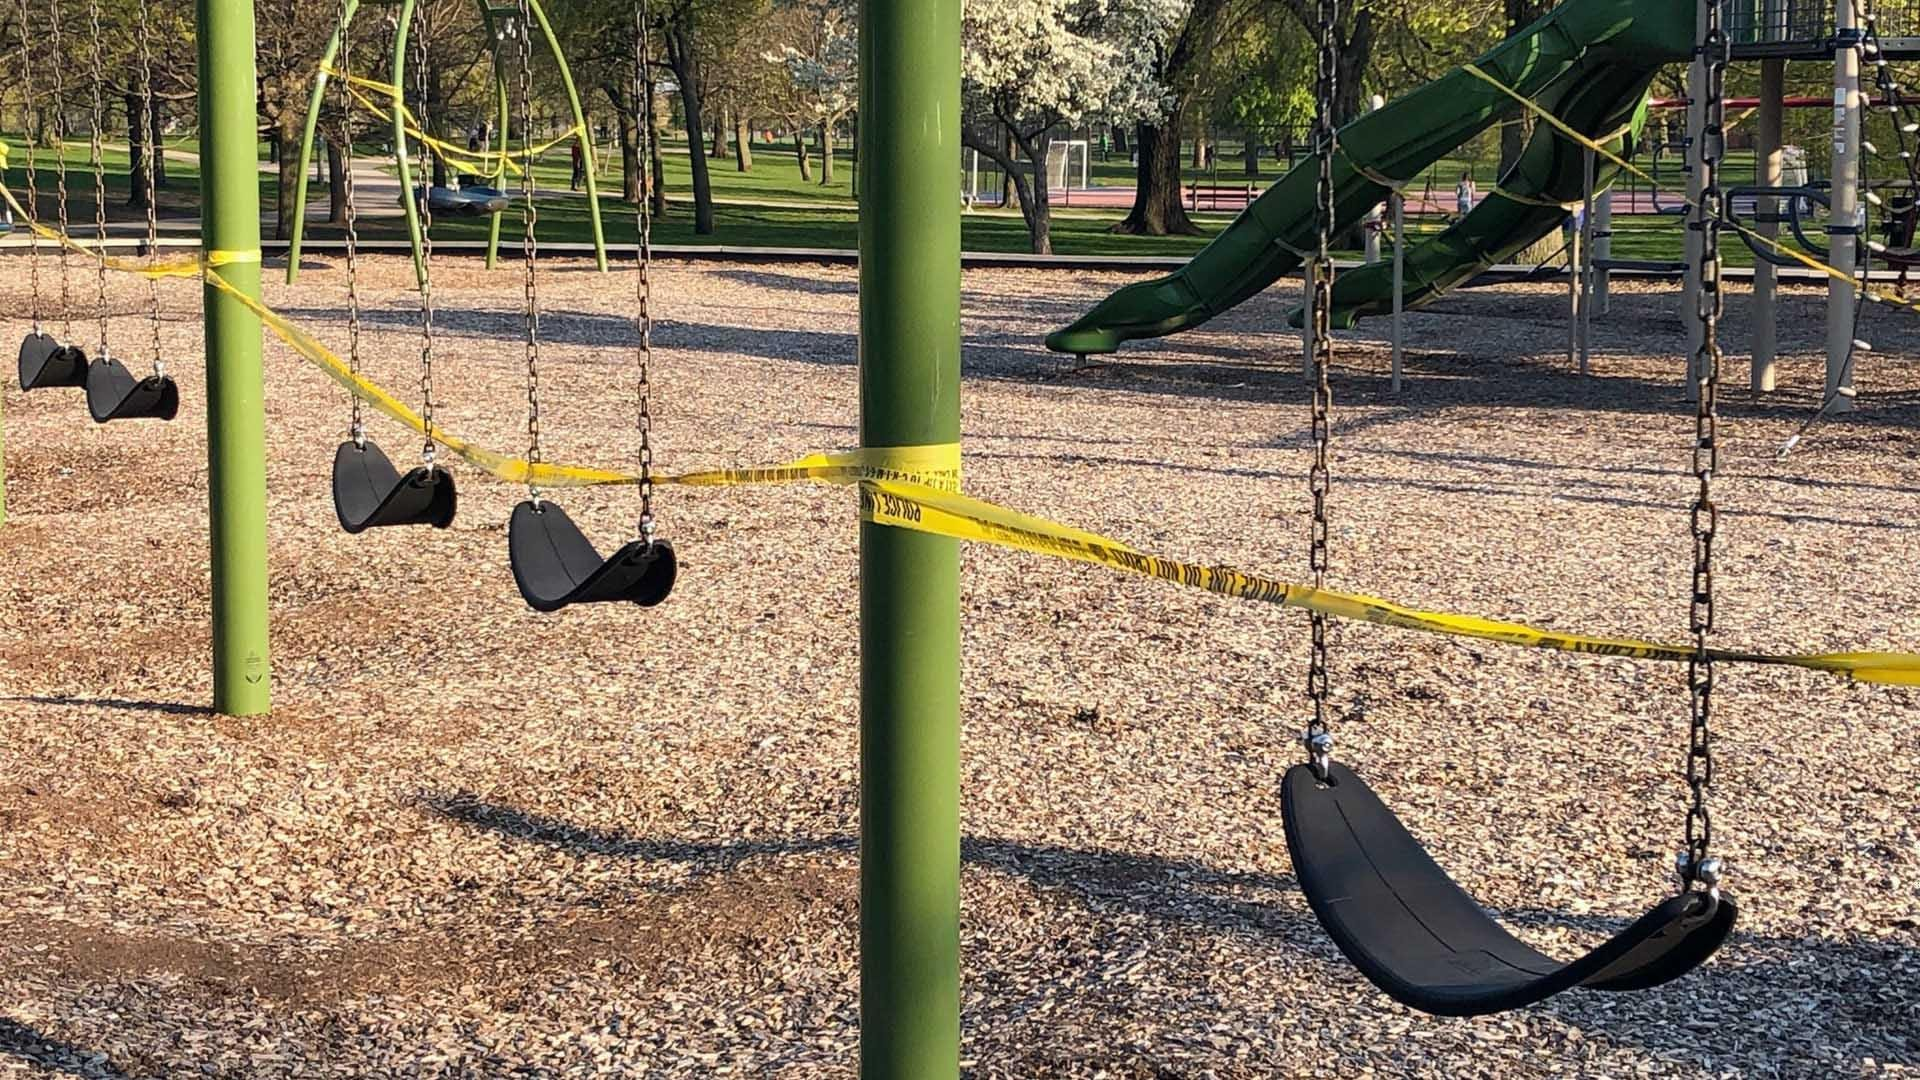 Playgrounds remain closed, awaiting public health guidance. (Patty Wetli / WTTW News)